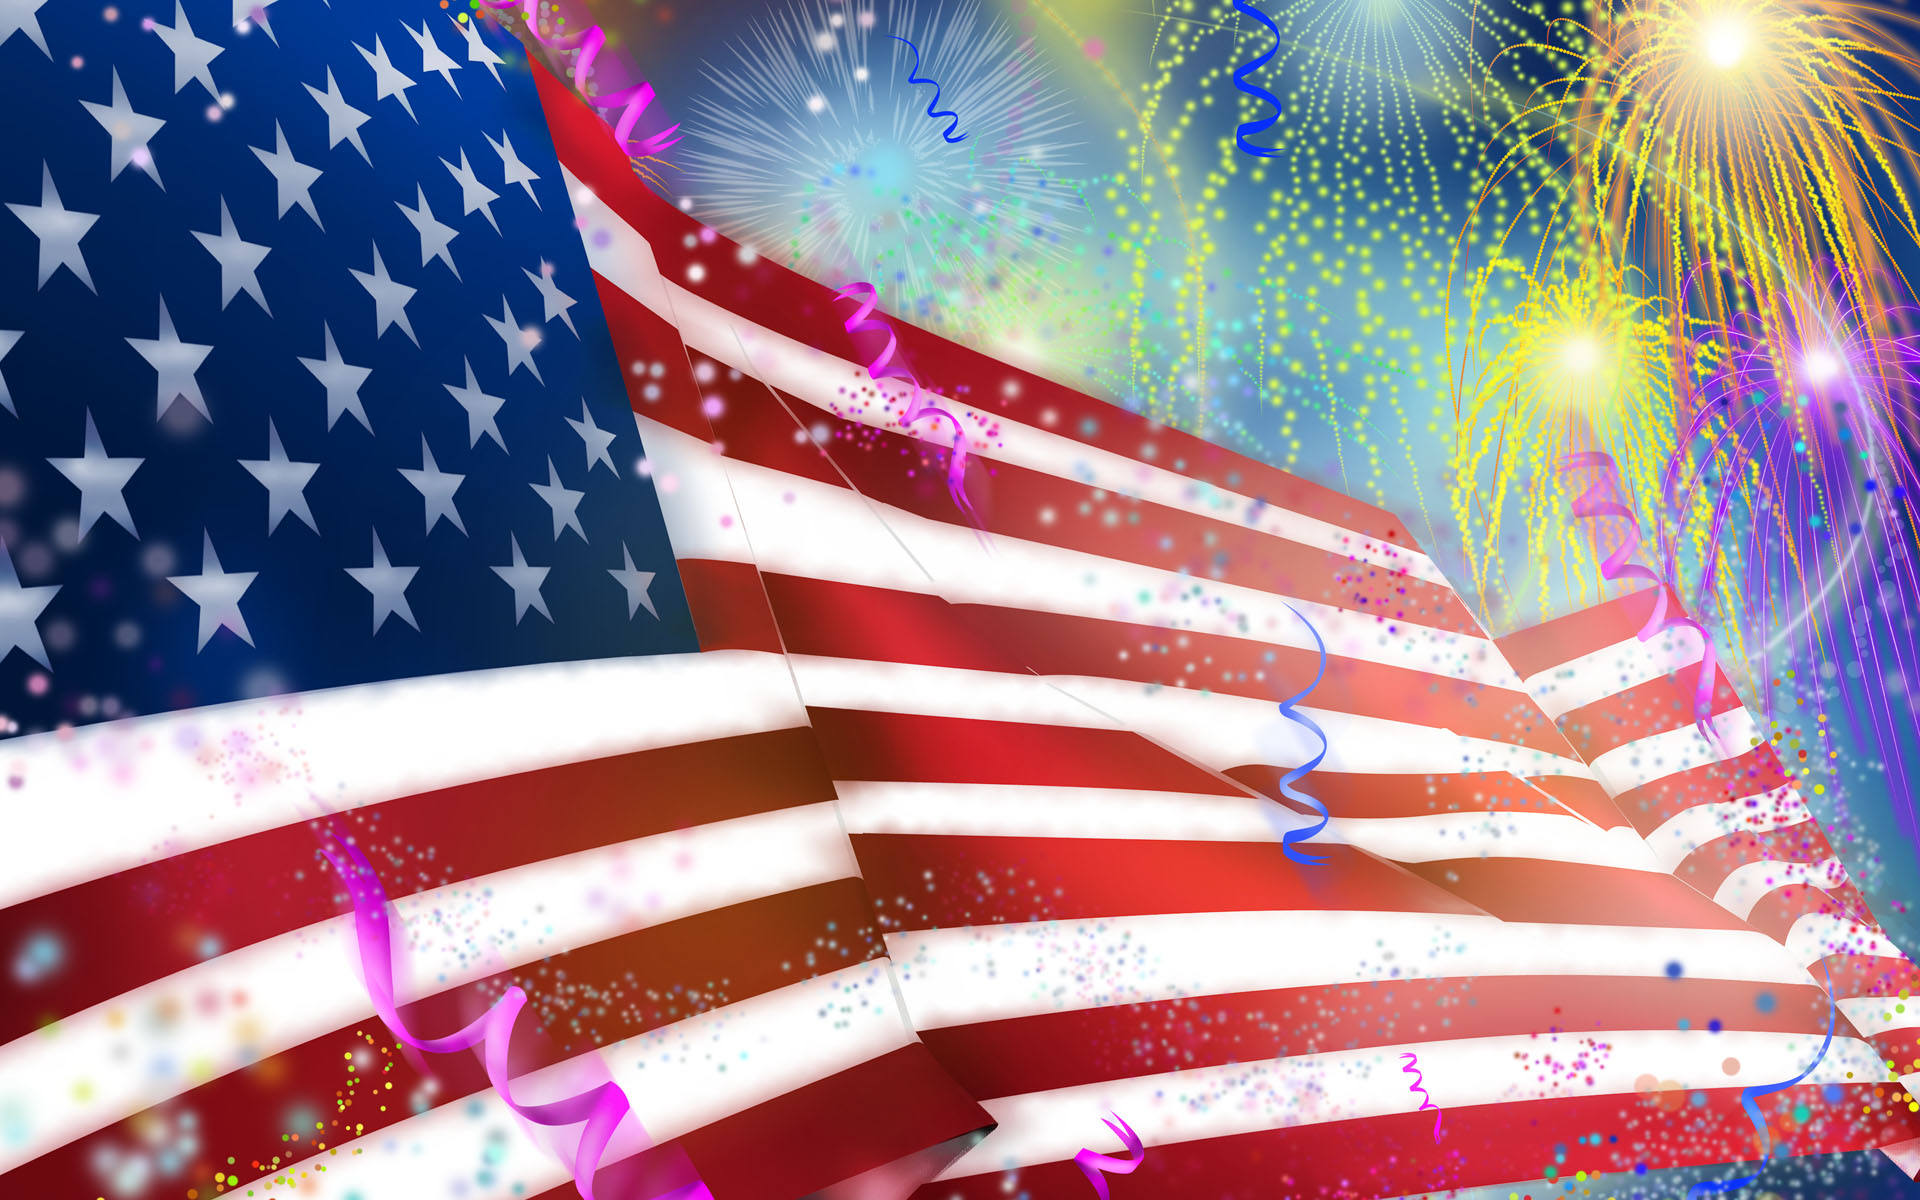 http://images4.fanpop.com/image/photos/23400000/Independence-Day-united-states-of-america-23406761-1920-1200.jpg